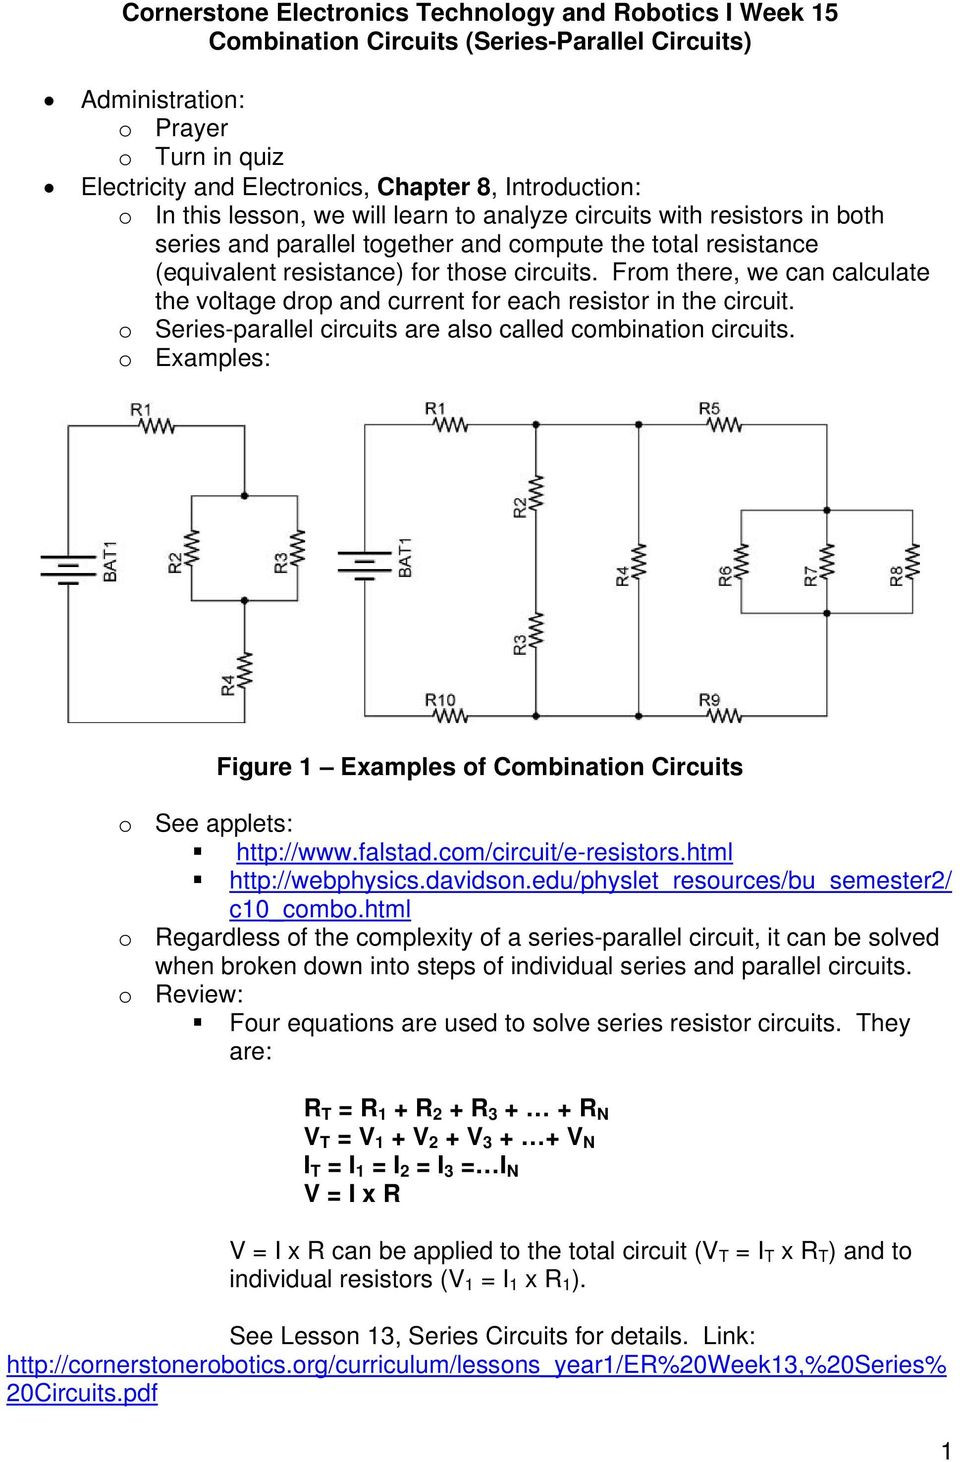 Combination Circuits Worksheet with Answers Cornerstone Electronics Technology and Robotics I Week 15